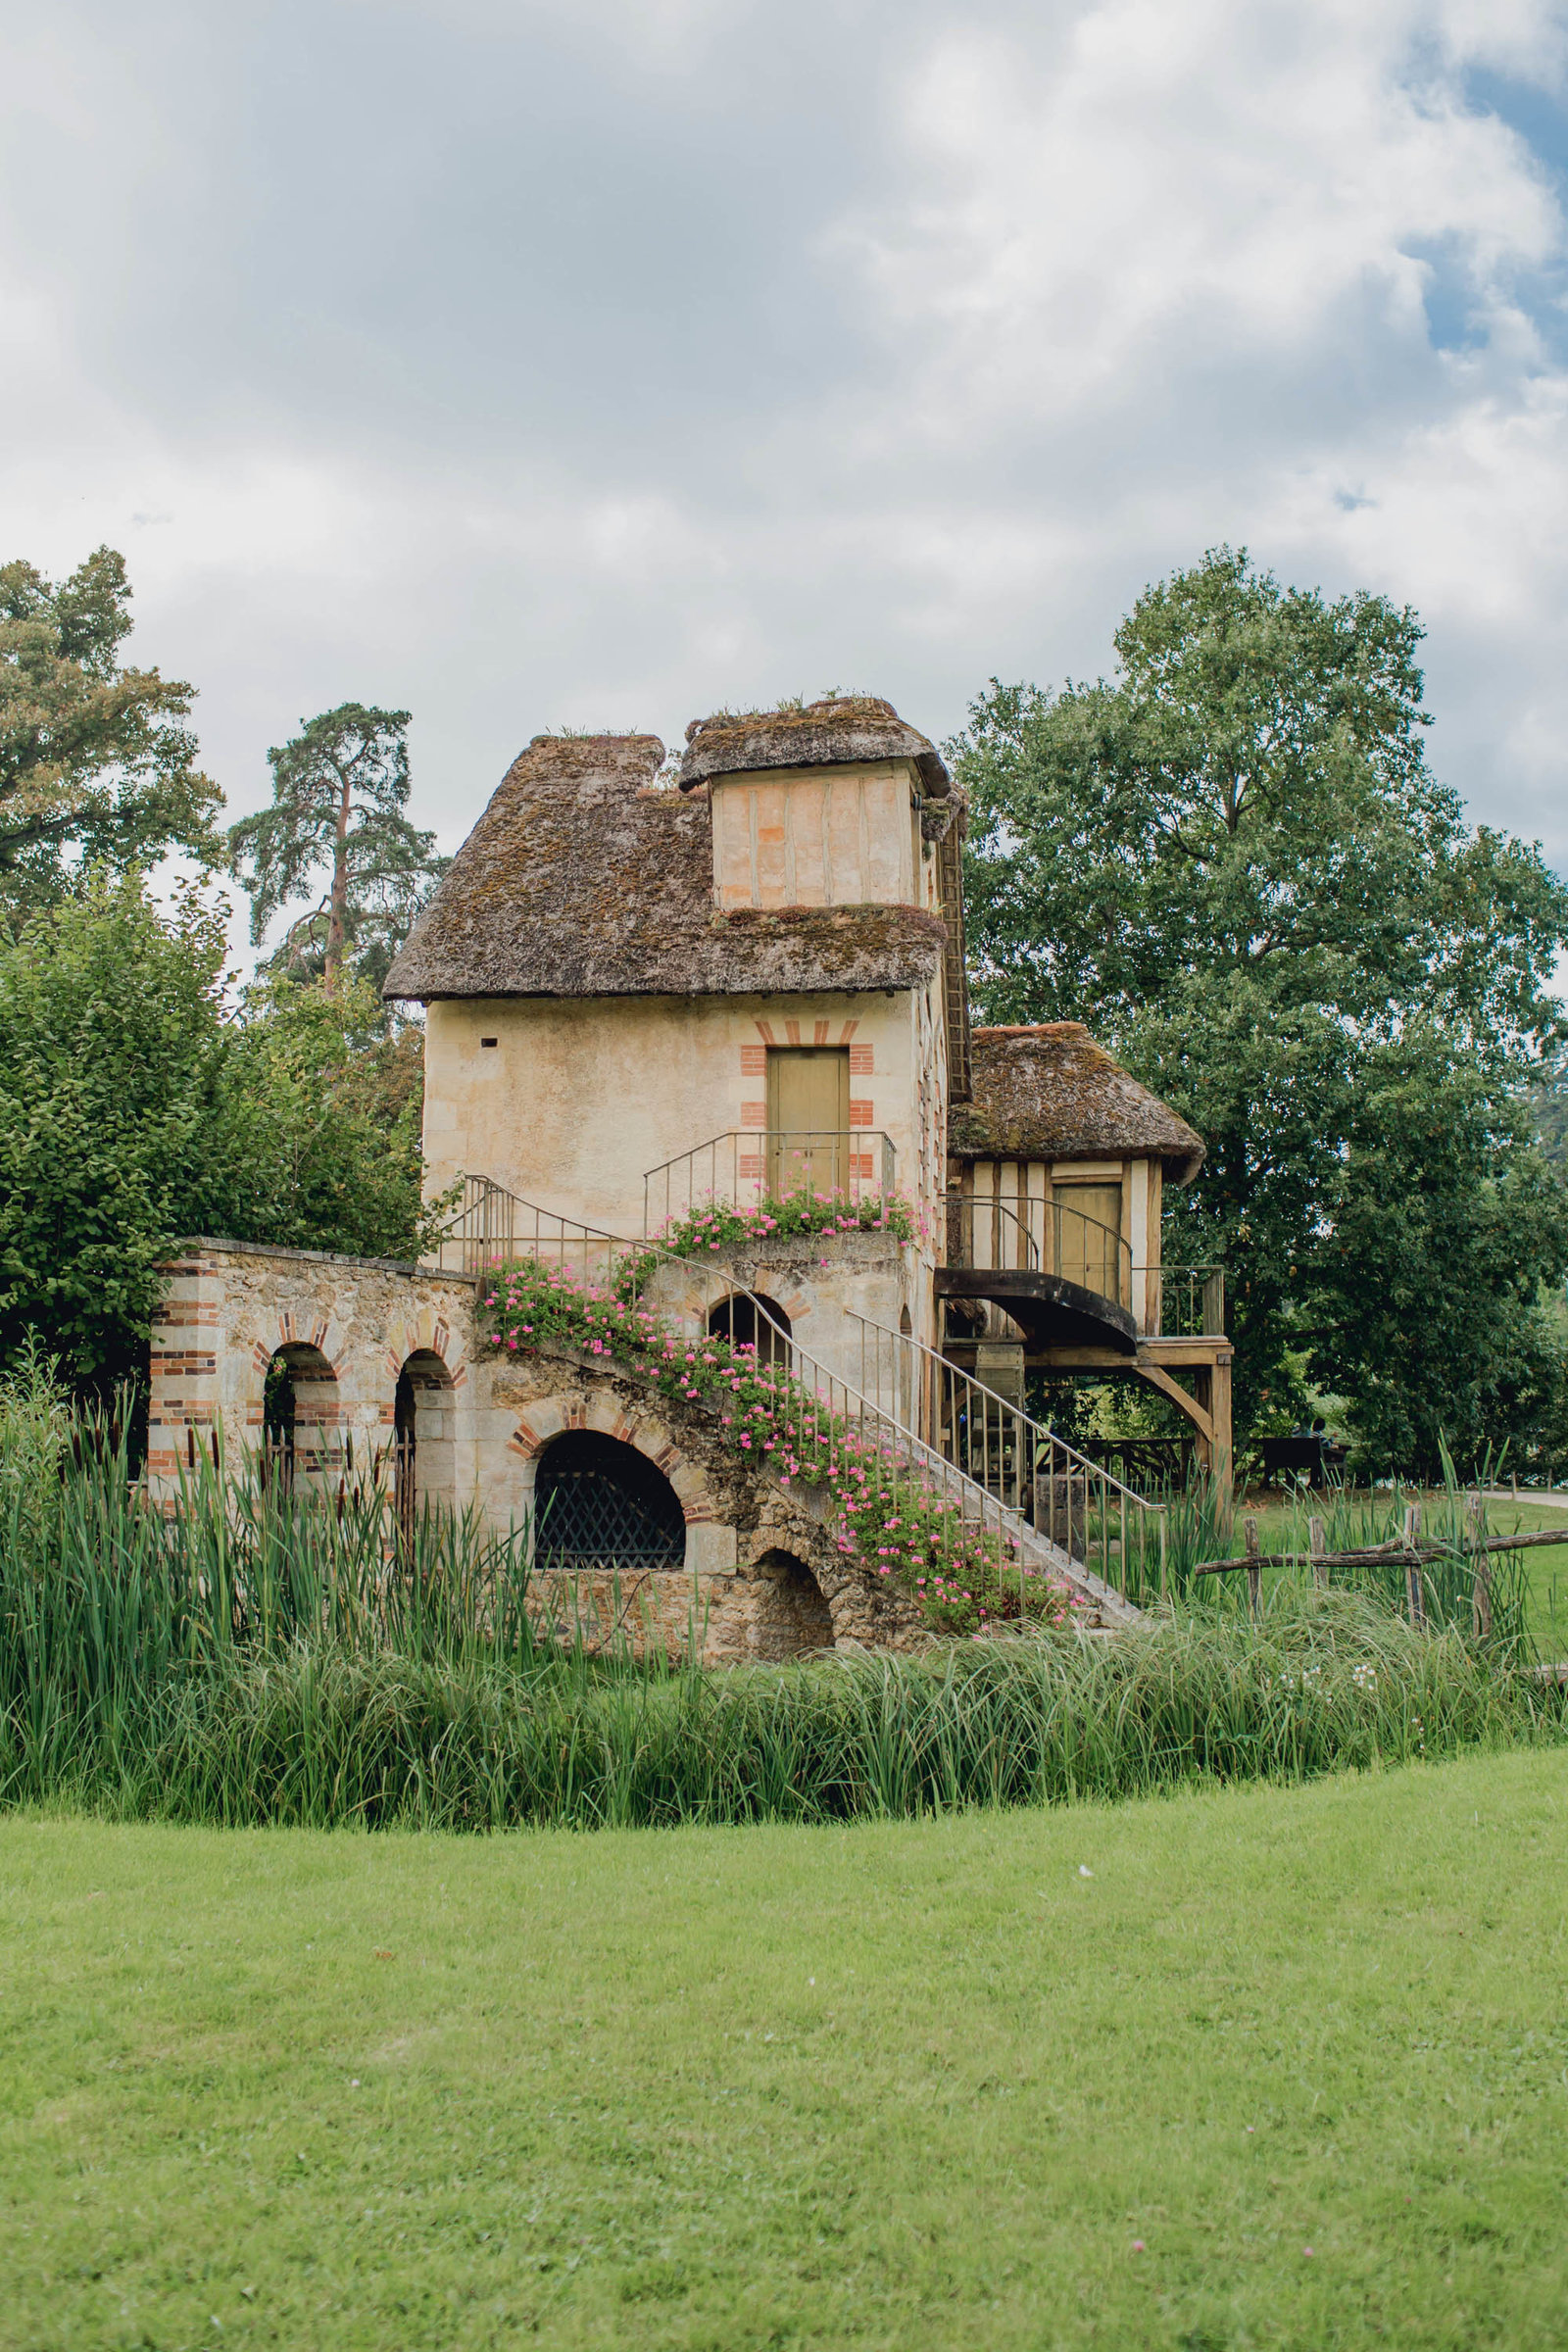 mill-marie-antoinette-hamlet-versailles-france-travel-destination-kate-timbers-photography-1715